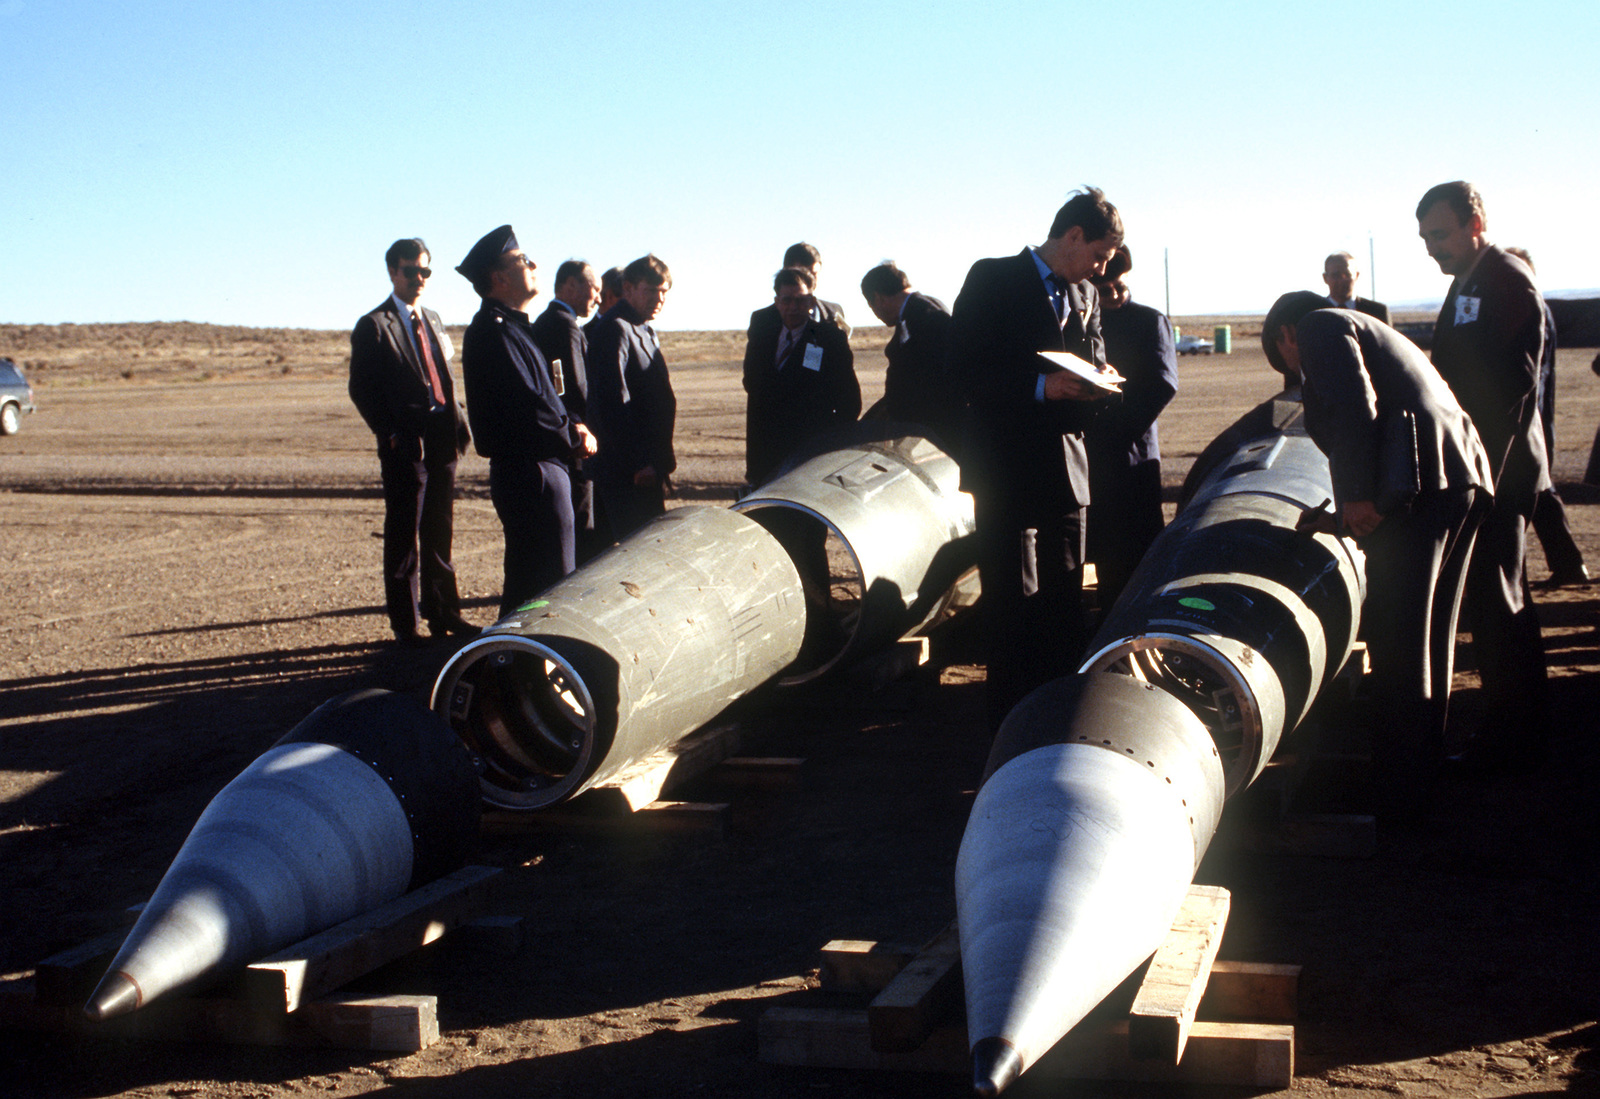 With their American escorts watching, Soviet inspectors record data from the side of a Pershing II missile prior to its destruction. Several missiles are to be destroyed in accordance with the Intermediate-Range Nuclear Forces (INF) Treaty